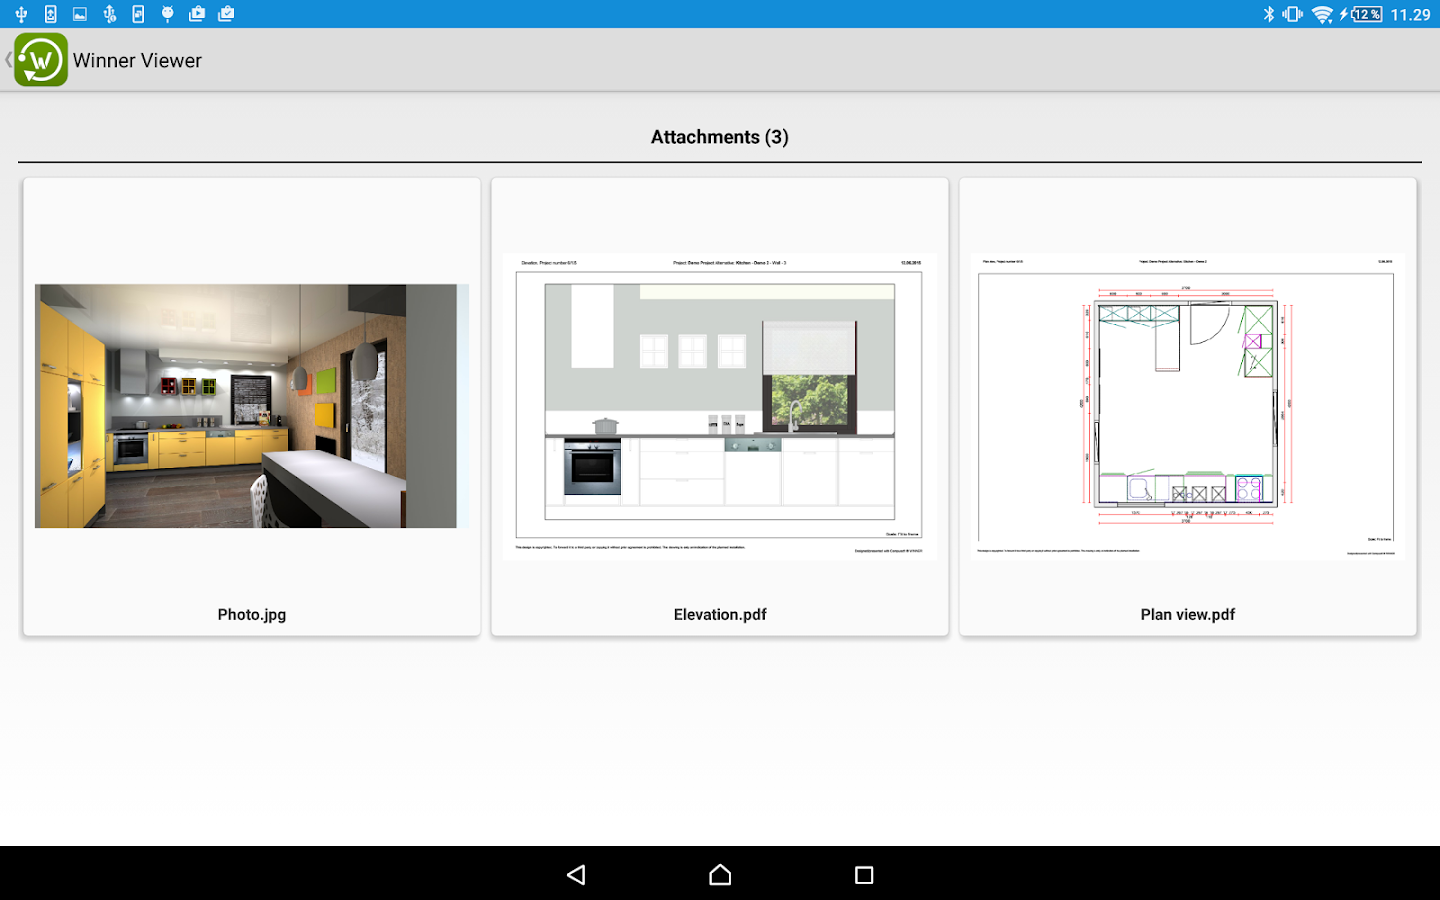 Winner viewer kitchen in 3d android apps on google play for Bathroom planner app android